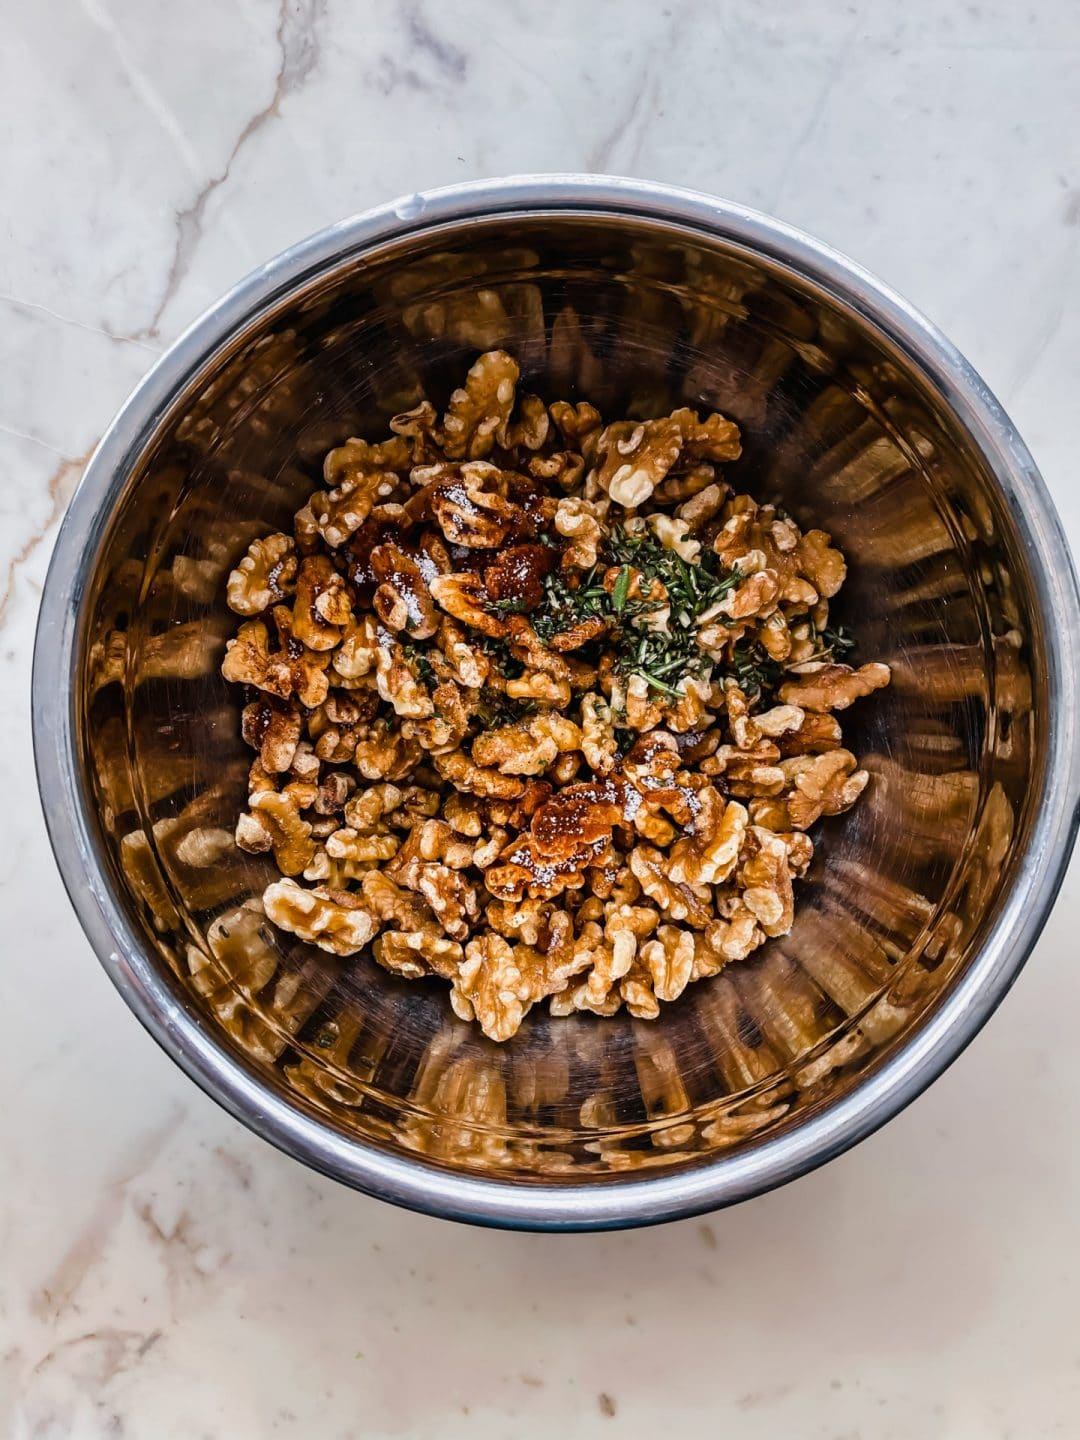 A metal mixing bowl filled with the ingredients for Chipotle Rosemary Roasted Walnuts.